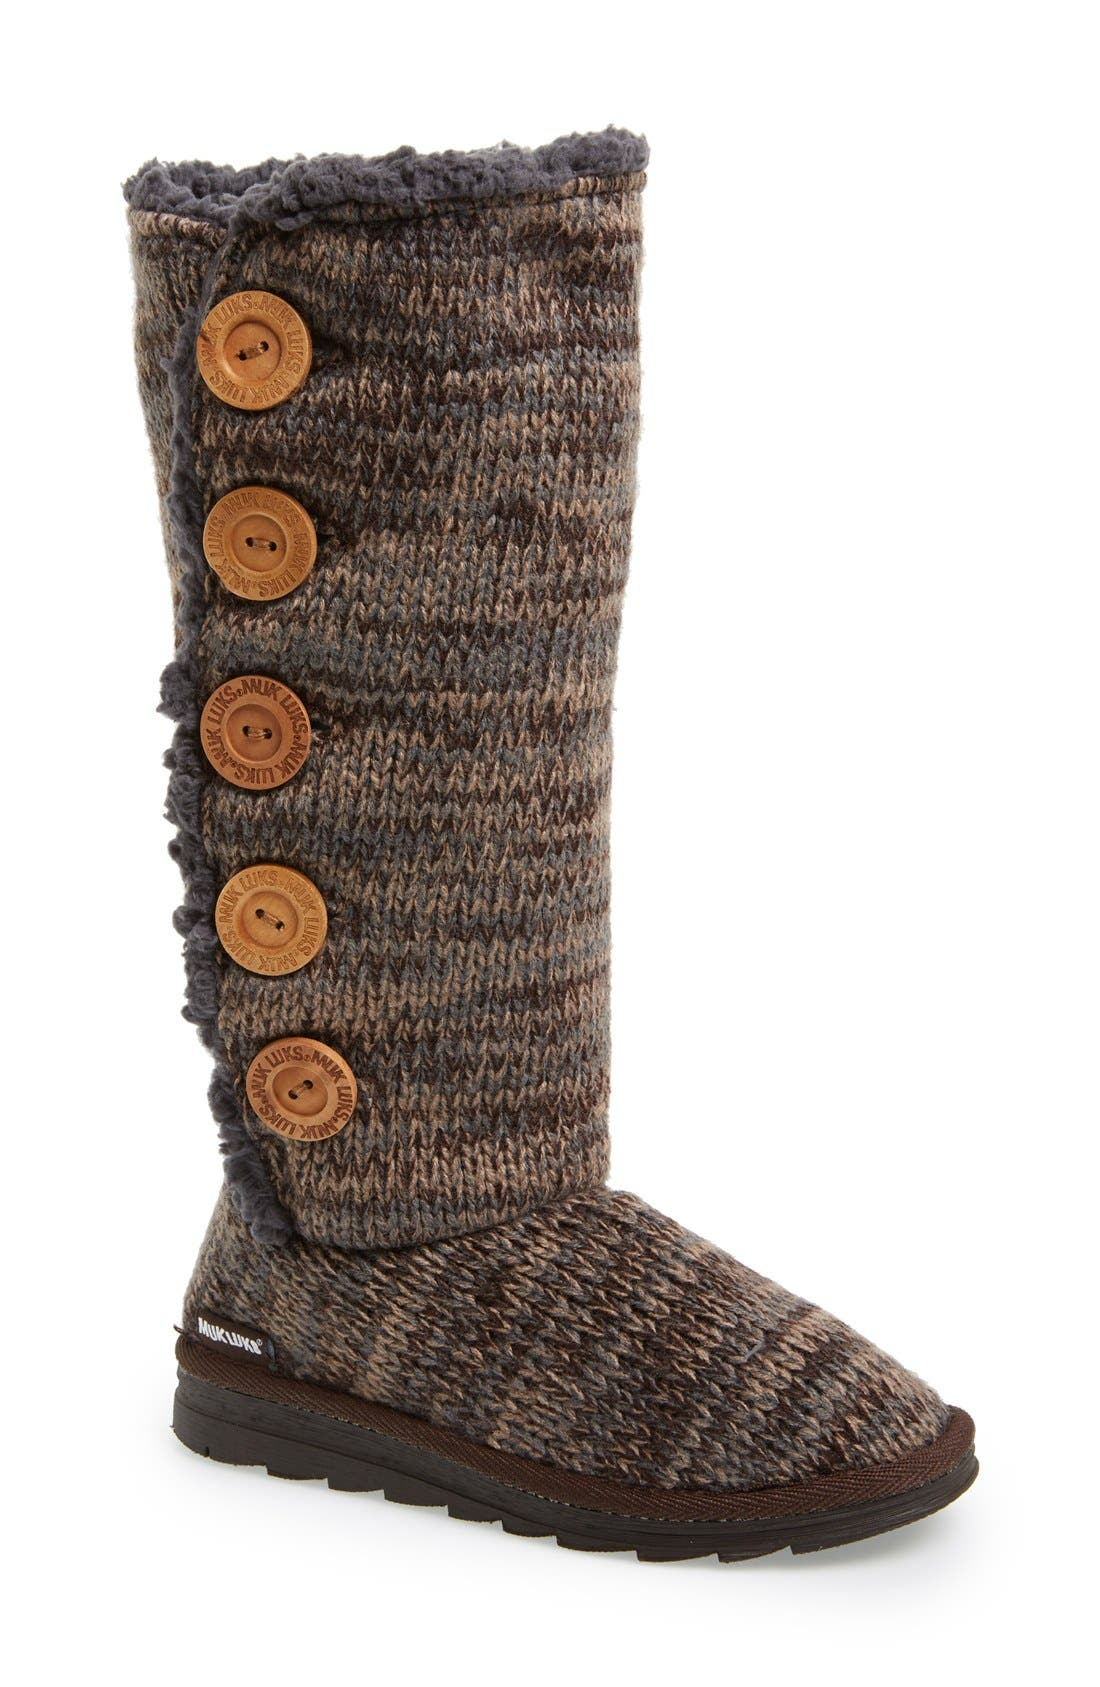 Main Image - MUK LUKS 'Malena' Button Up Crochet Boot (Women)